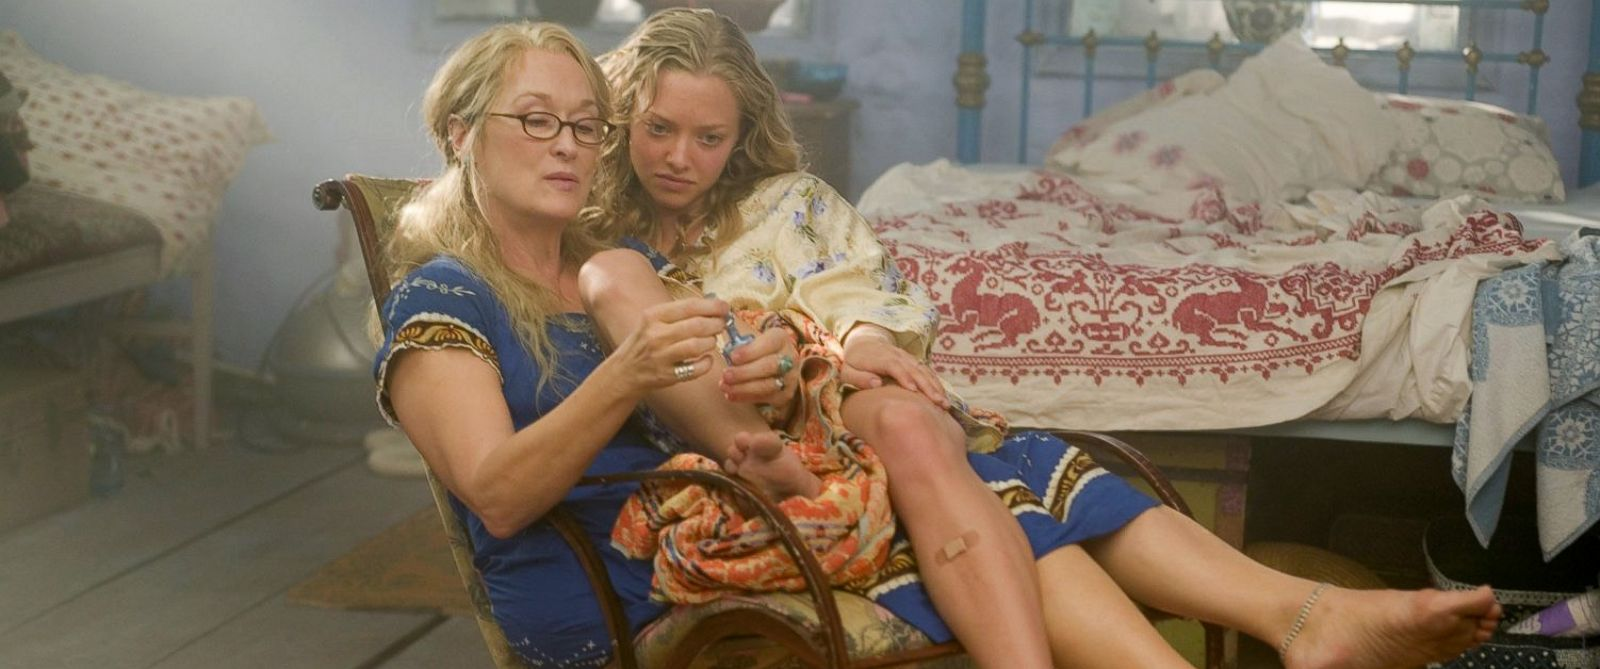 "PHOTO: Meryl Streep, as Donna, and Amanda Seyfried, as Sophie, in a scene from ""Mamma Mia!"""